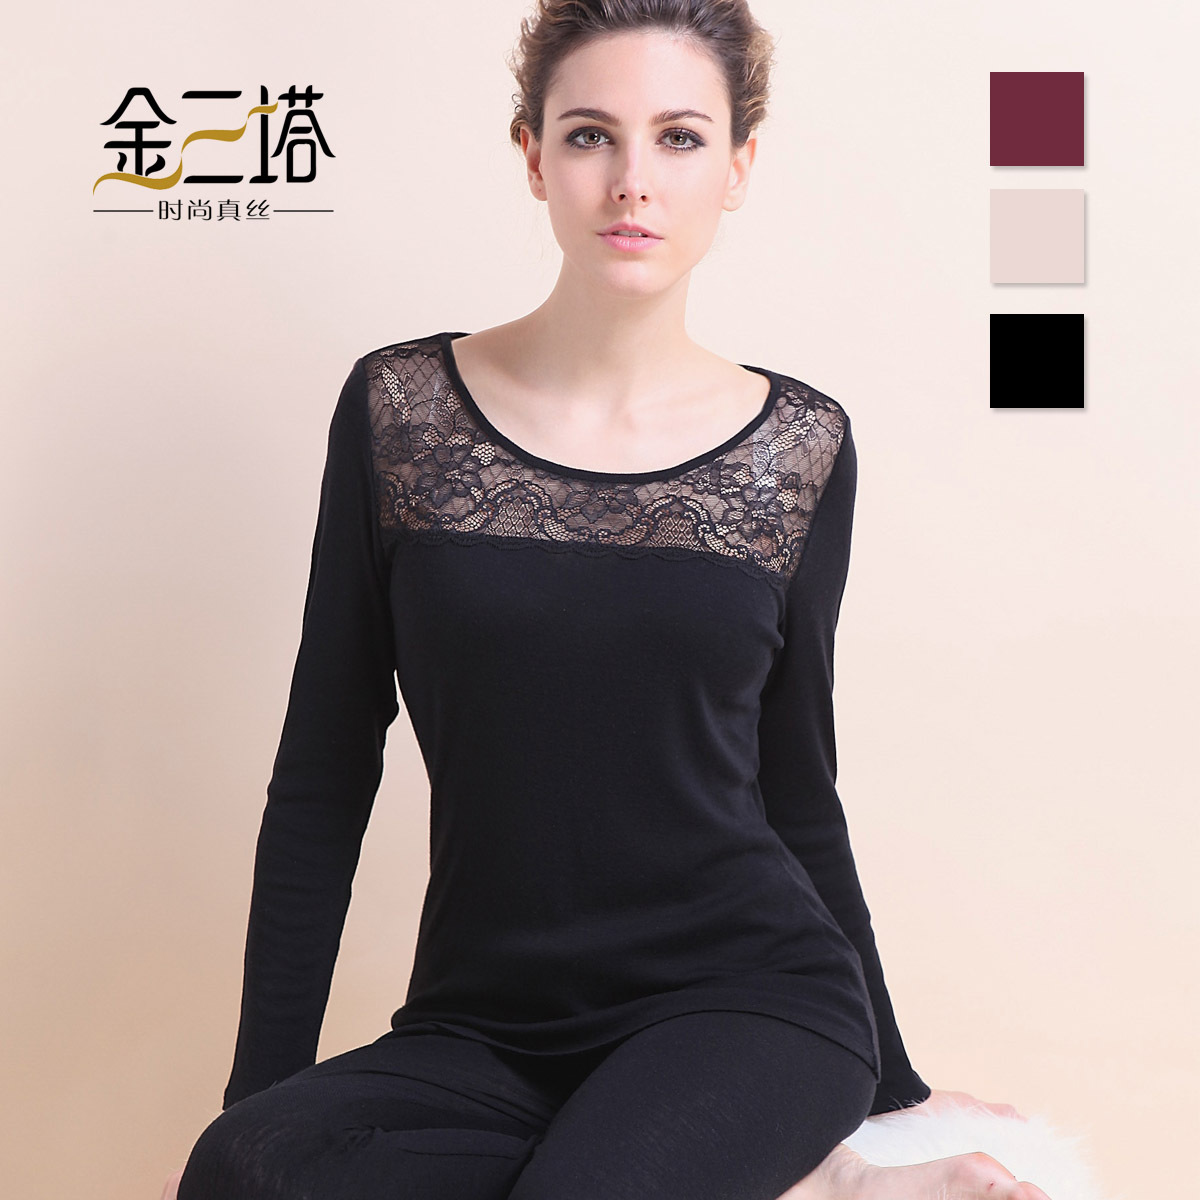 Compare Prices on Wool Silk Long Underwear- Online Shopping/Buy ...